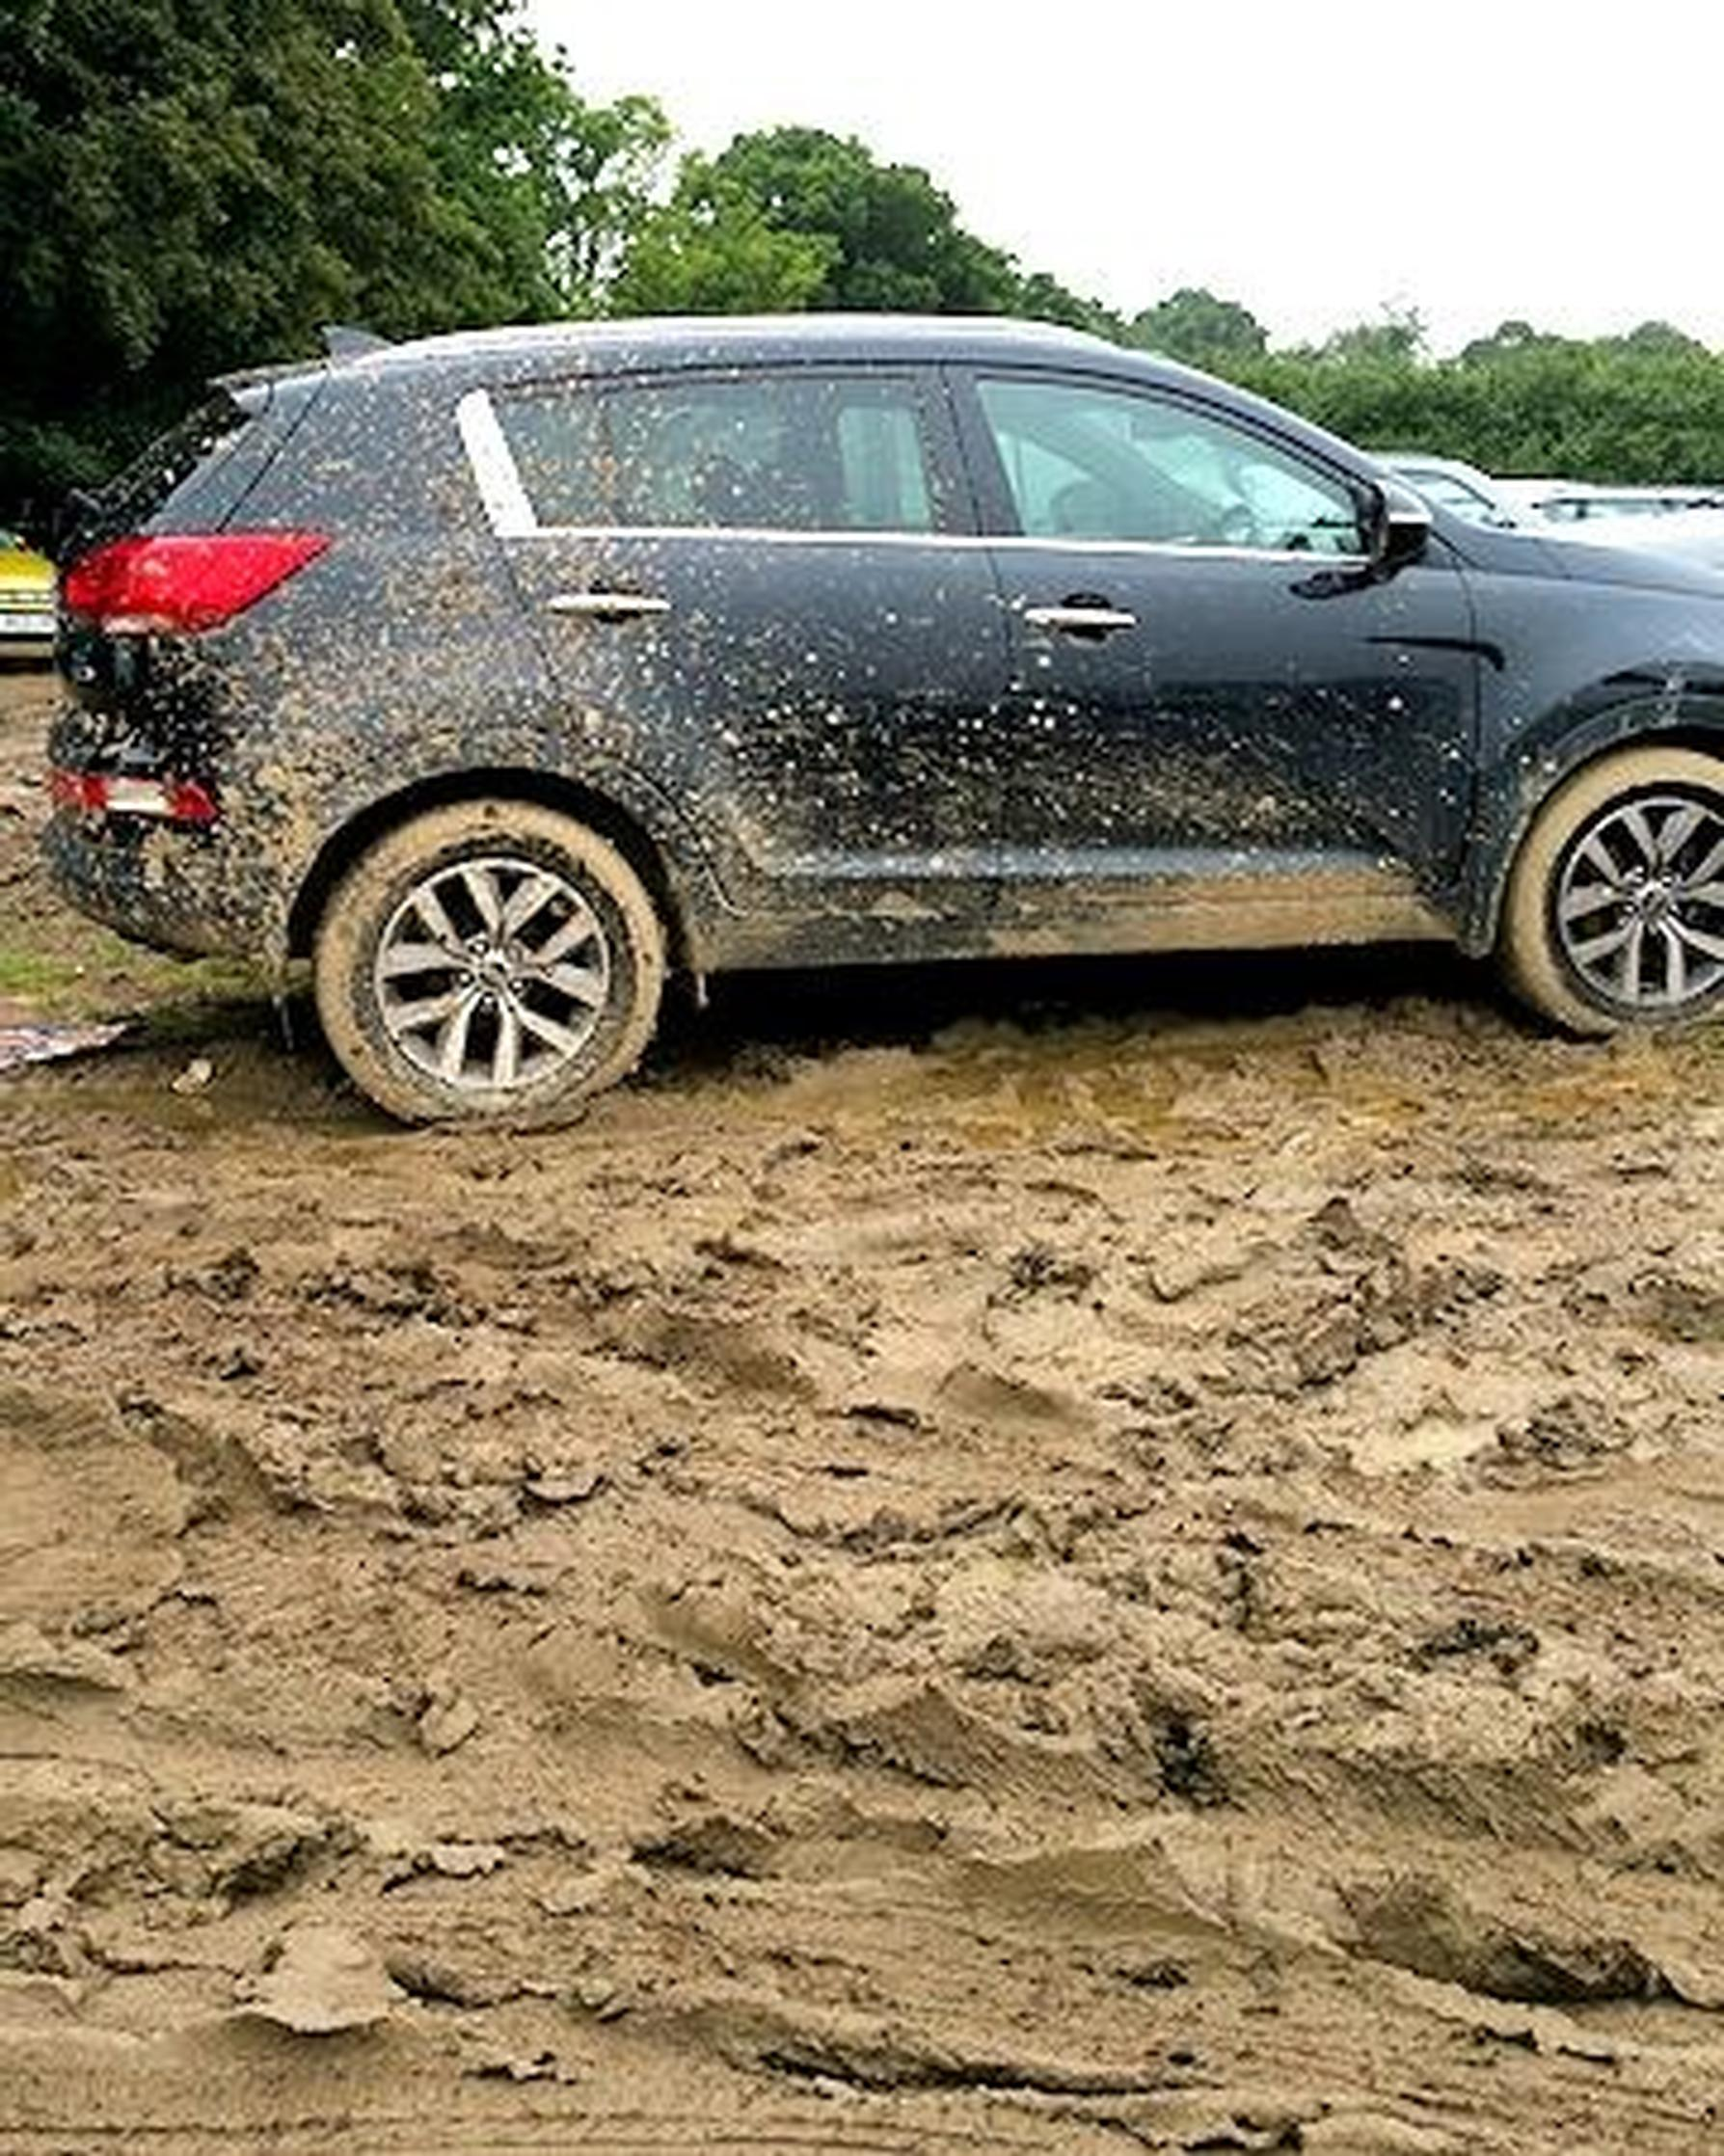 Sussex Police find 1,000 cars left unattended in muddy field near Gatwick Airport